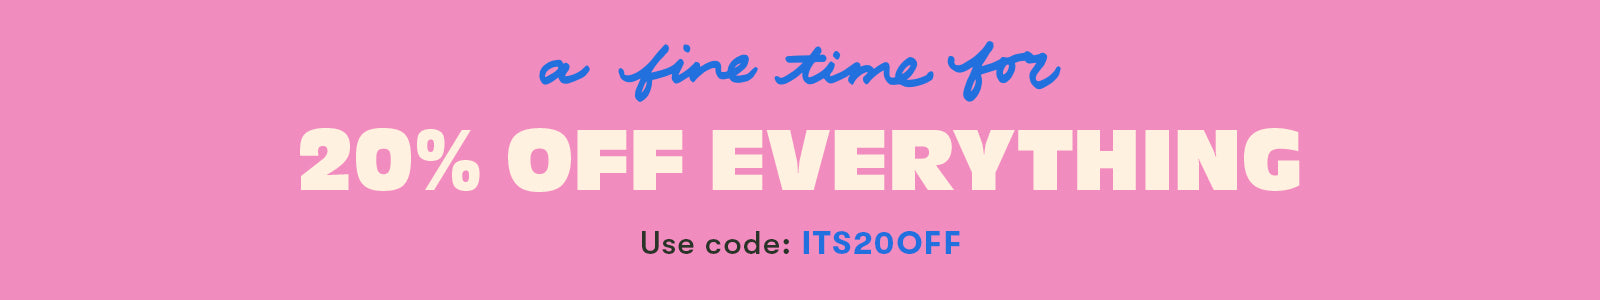 Free shipping for Friend Zone members thru 12/18!